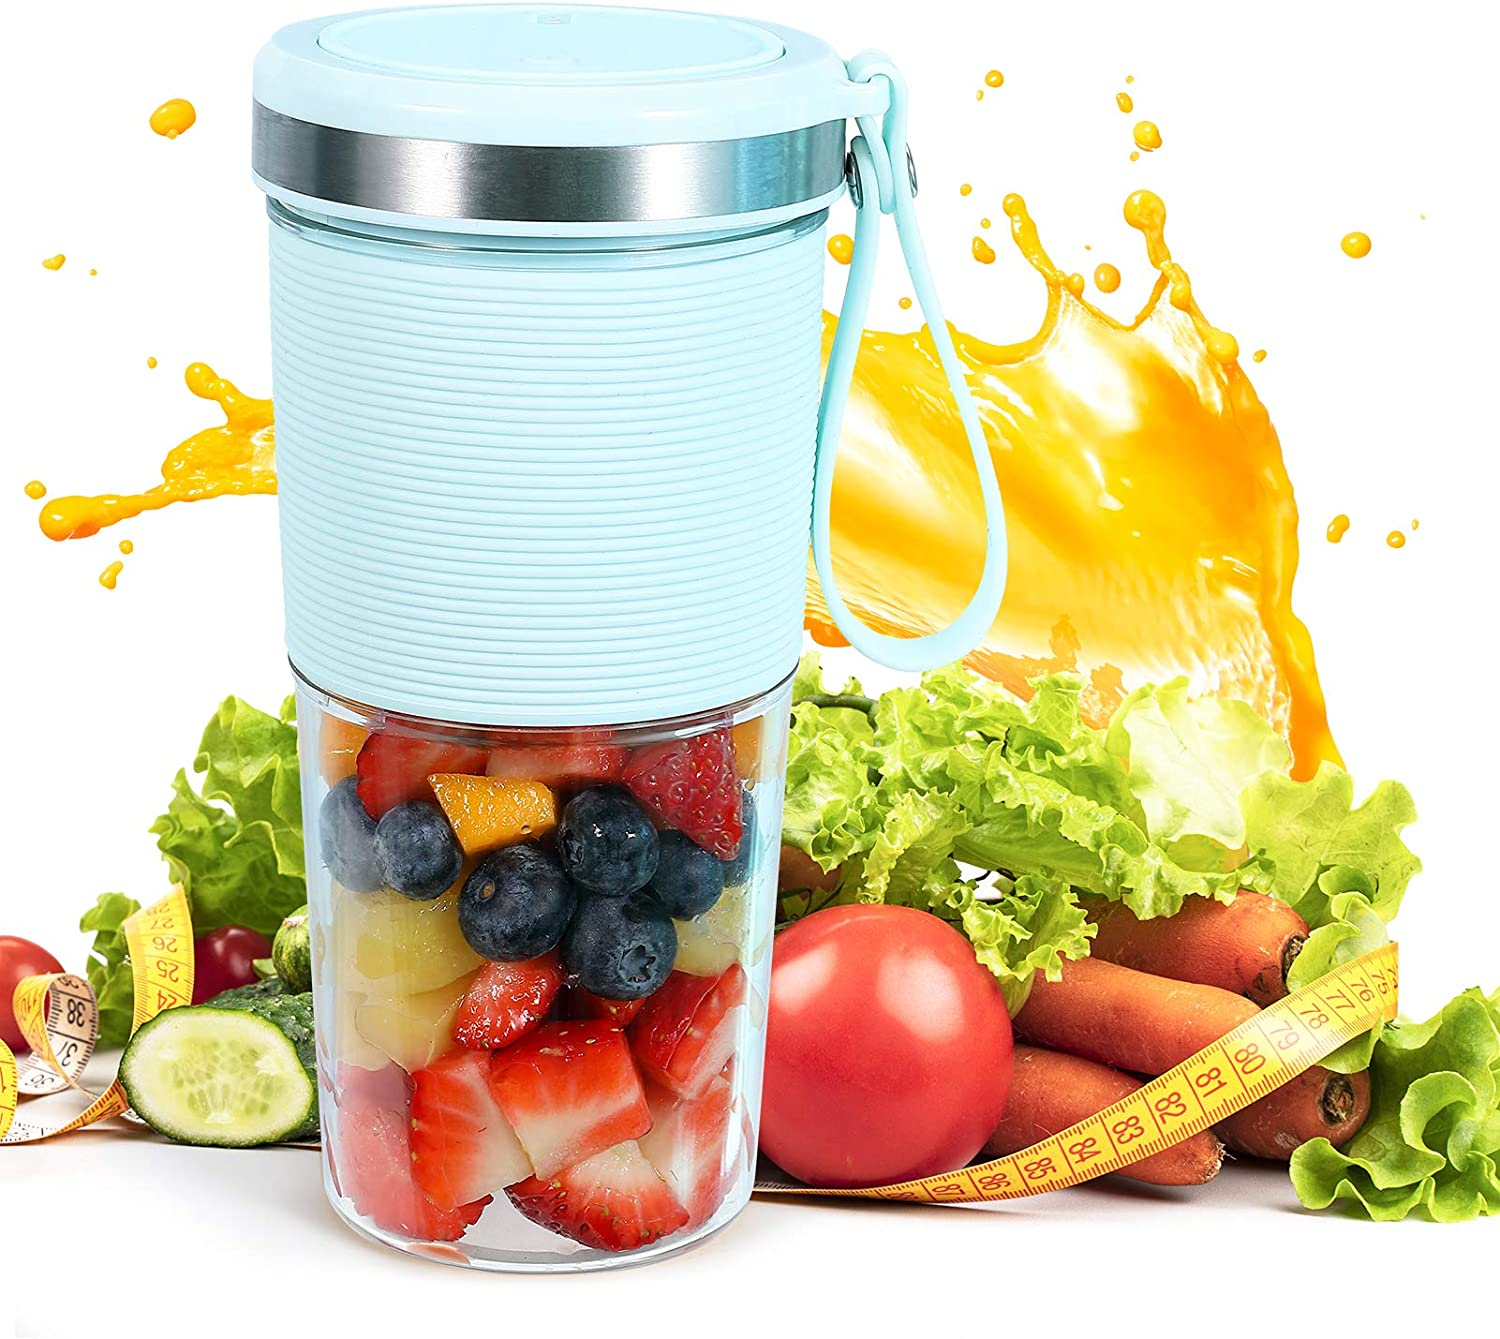 Portable Blender, LEQEE Cordless Portable Juicer Blender Cups for Shakes and Smoothies, 13.5oz Travel Blender with USB Rechargeable, On the Go Small Portable Blender Cup Made with Bpa-free Material